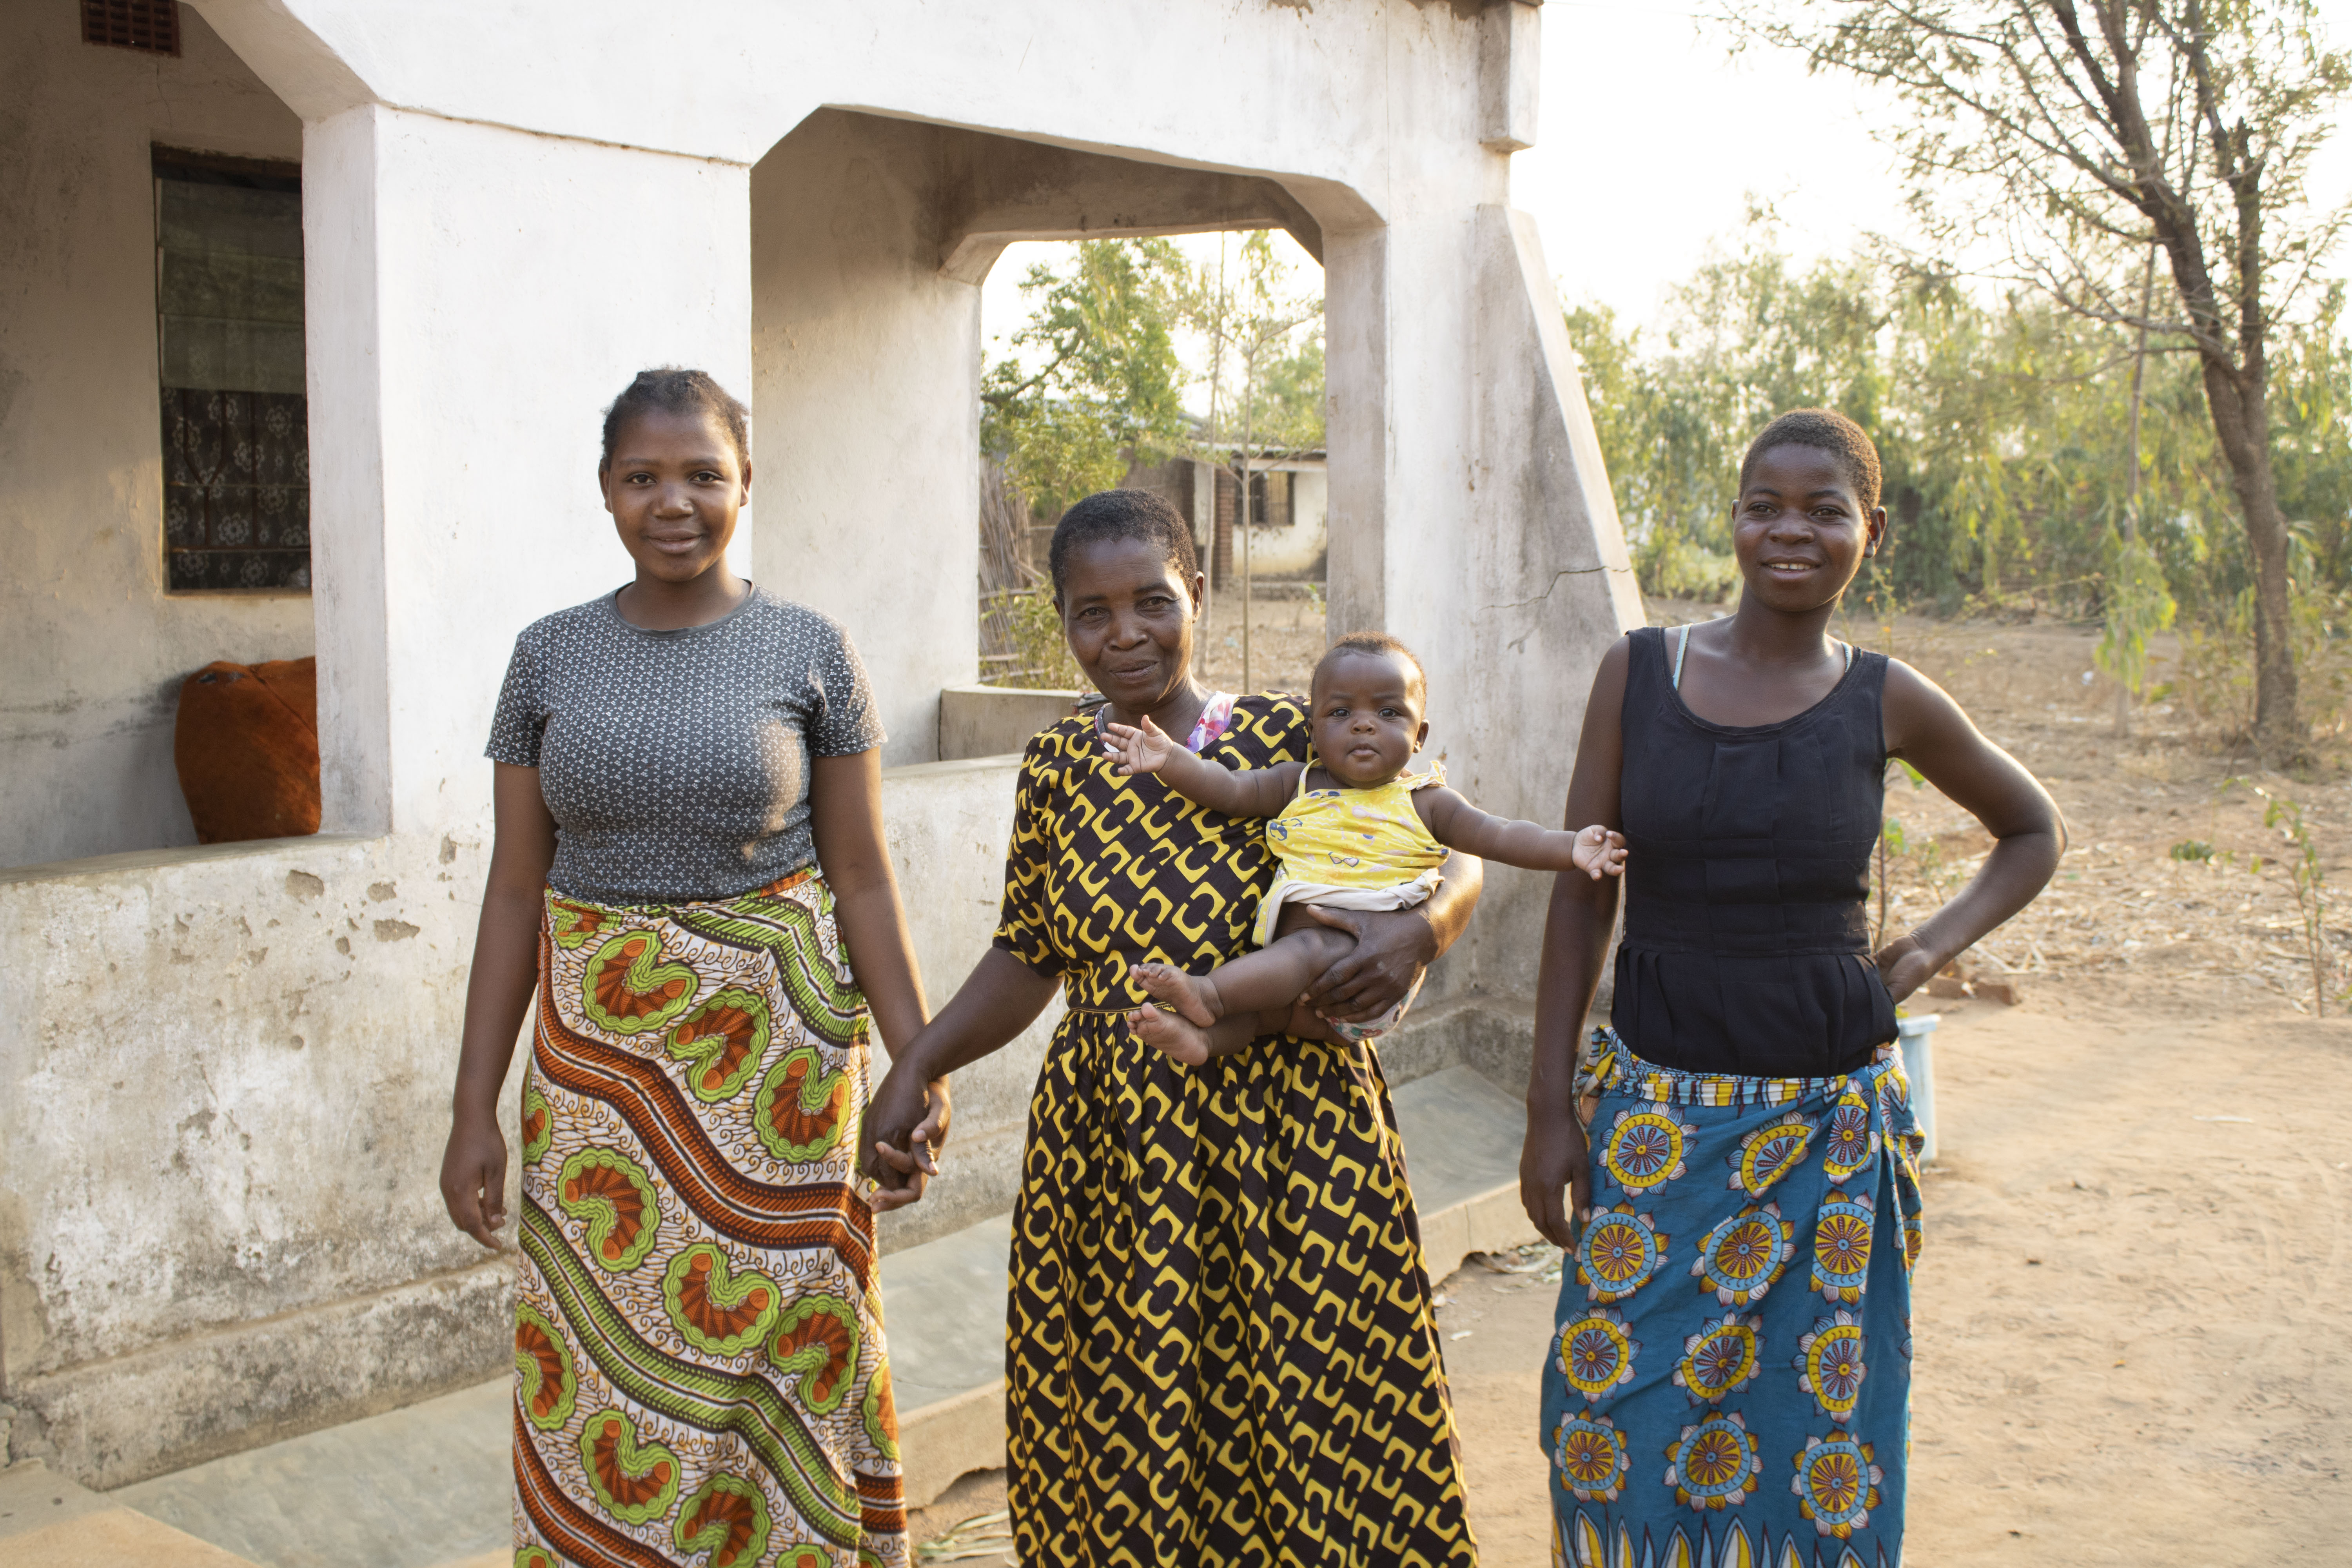 Lughano Mwangonde (center) holds her granddaughter and stands for a portrait with her daughters. (Photo: Shiela Chikulo/CIMMYT)